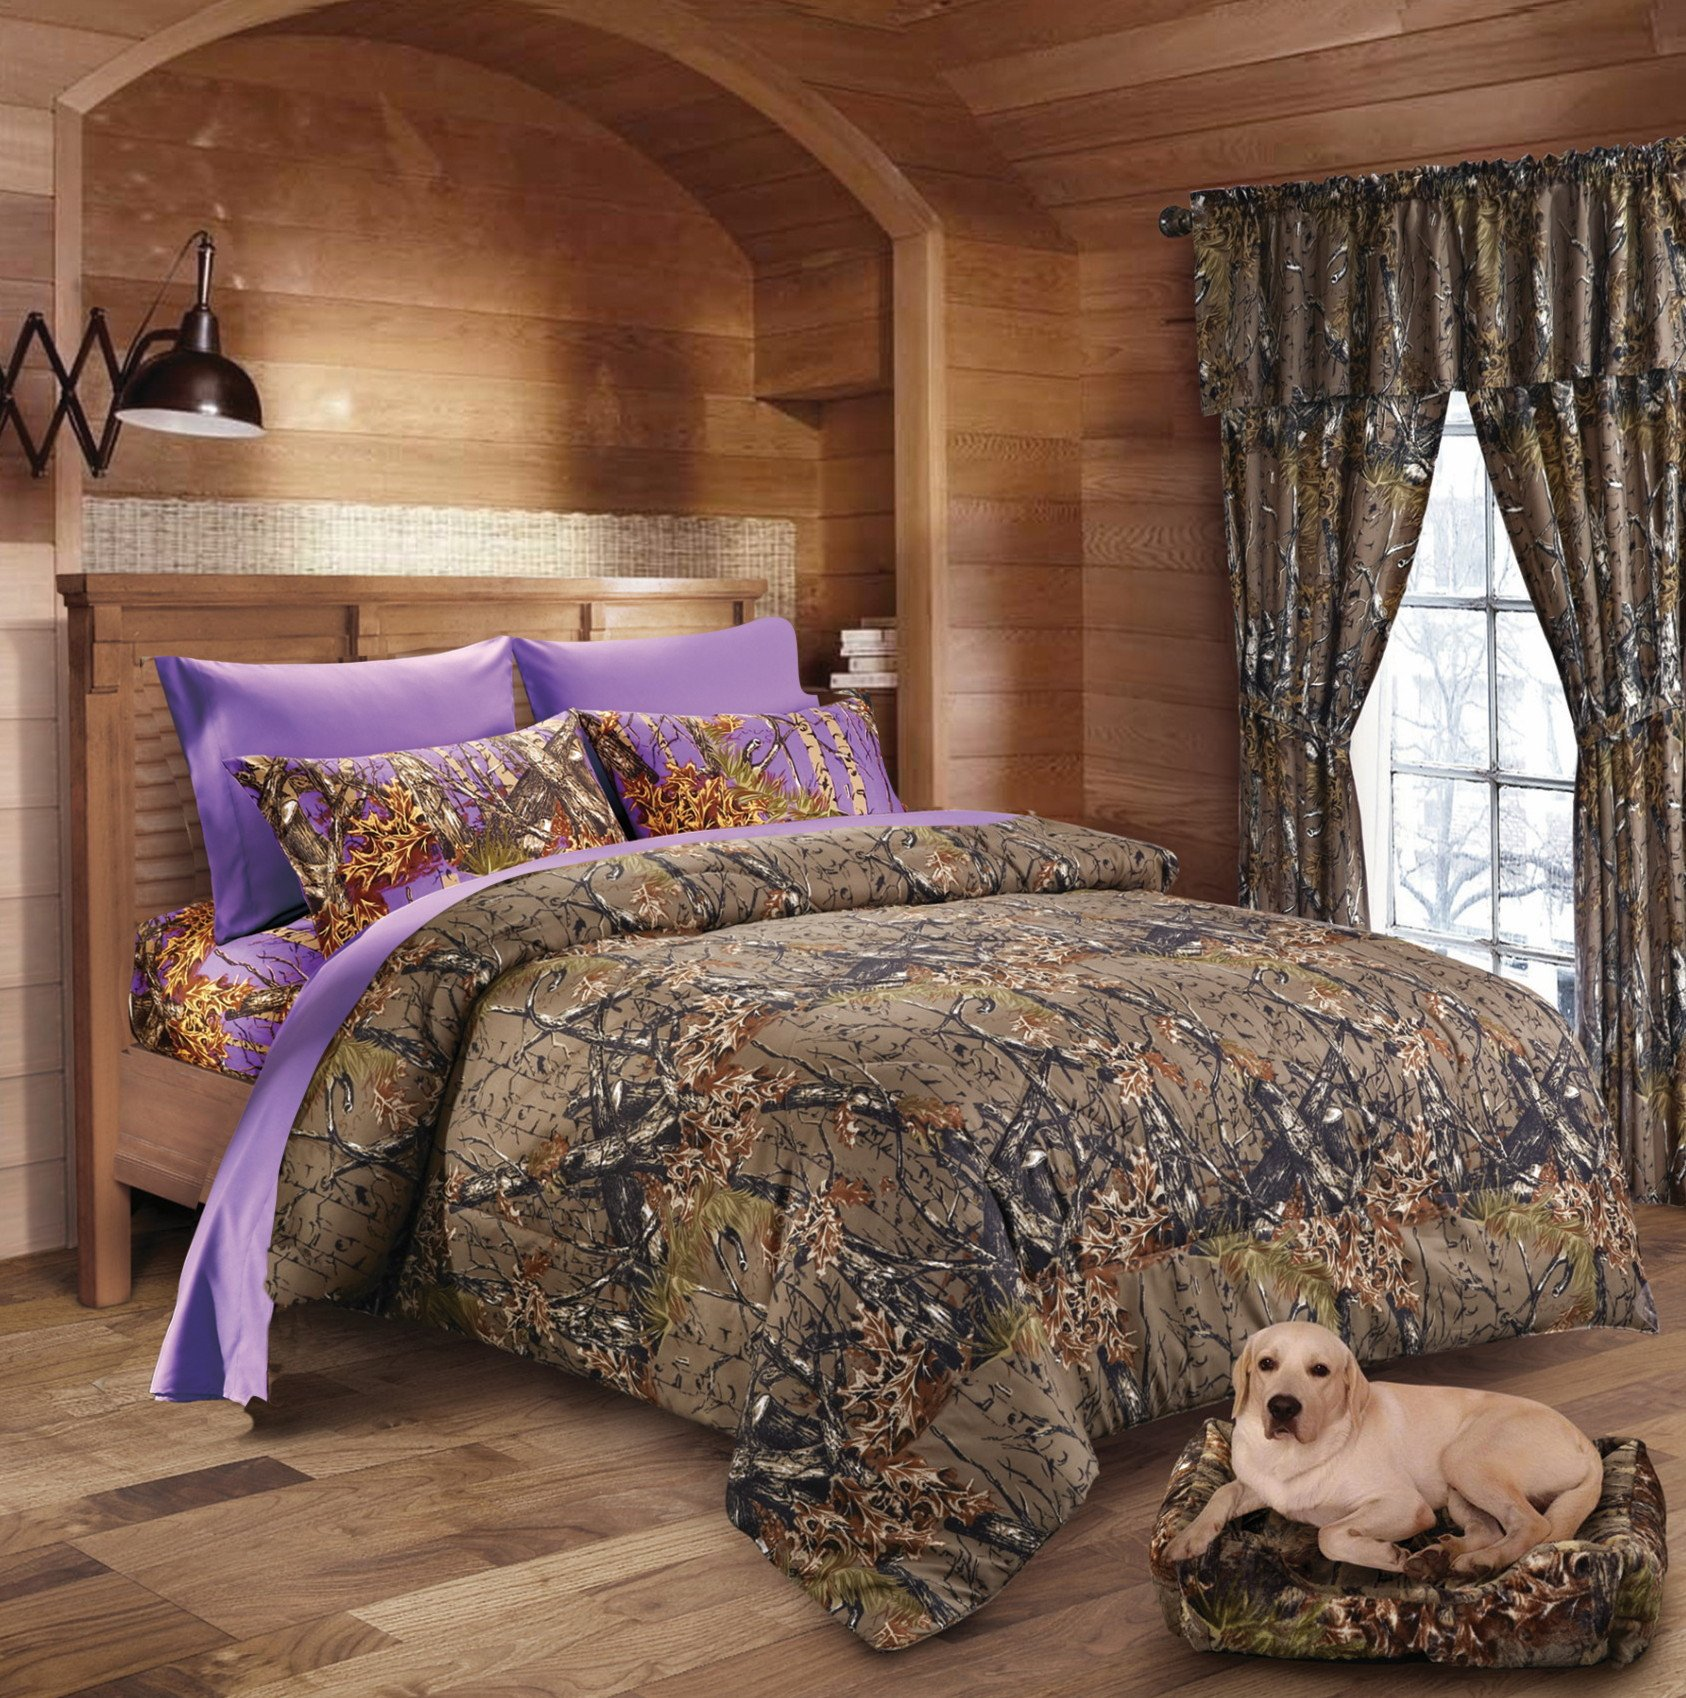 20 Lakes Hunter Camo Comforter, Sheet, Pillowcase Set Brown & Purple (King, Brown & Purple)